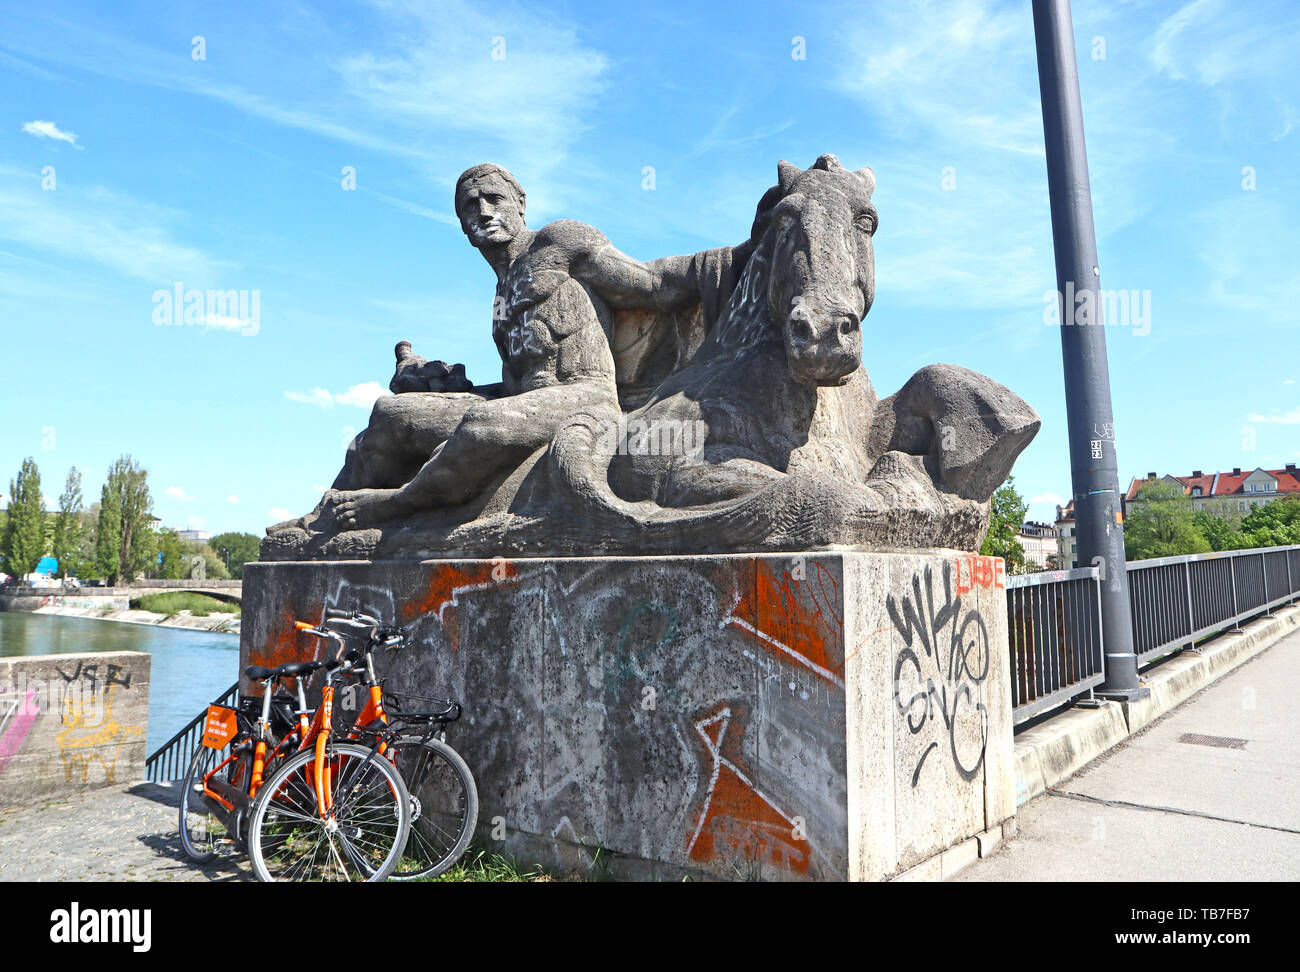 MUNICH, GERMANY - MAY 2, 2019 Sculpture group dated 1925 at the NW beginning of the Reichenbach bridge over the Isar river in Munich Stock Photo